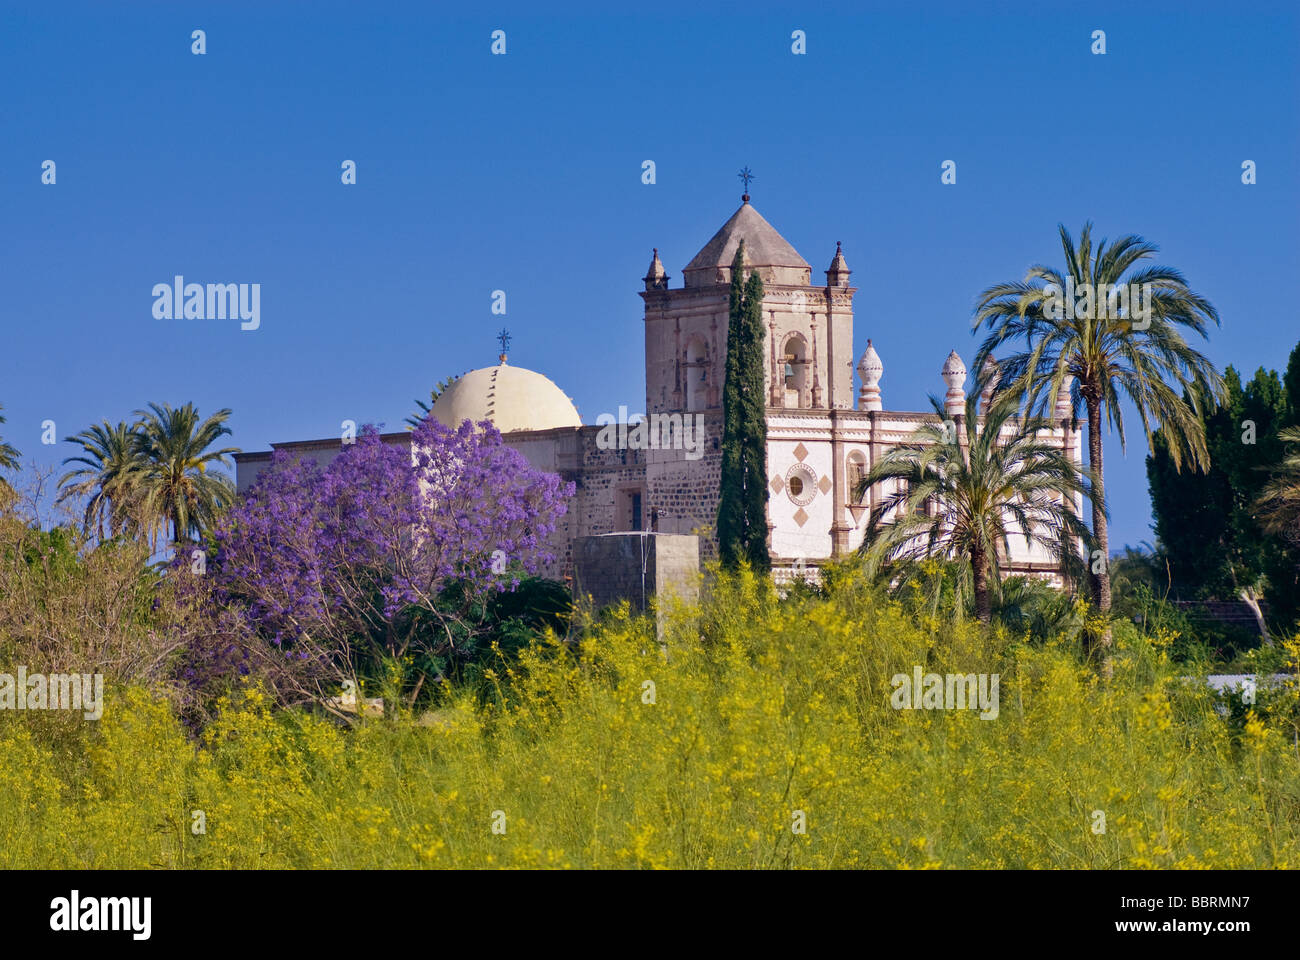 Mision San Ignacio in Baja California Sur Mexico - Stock Image